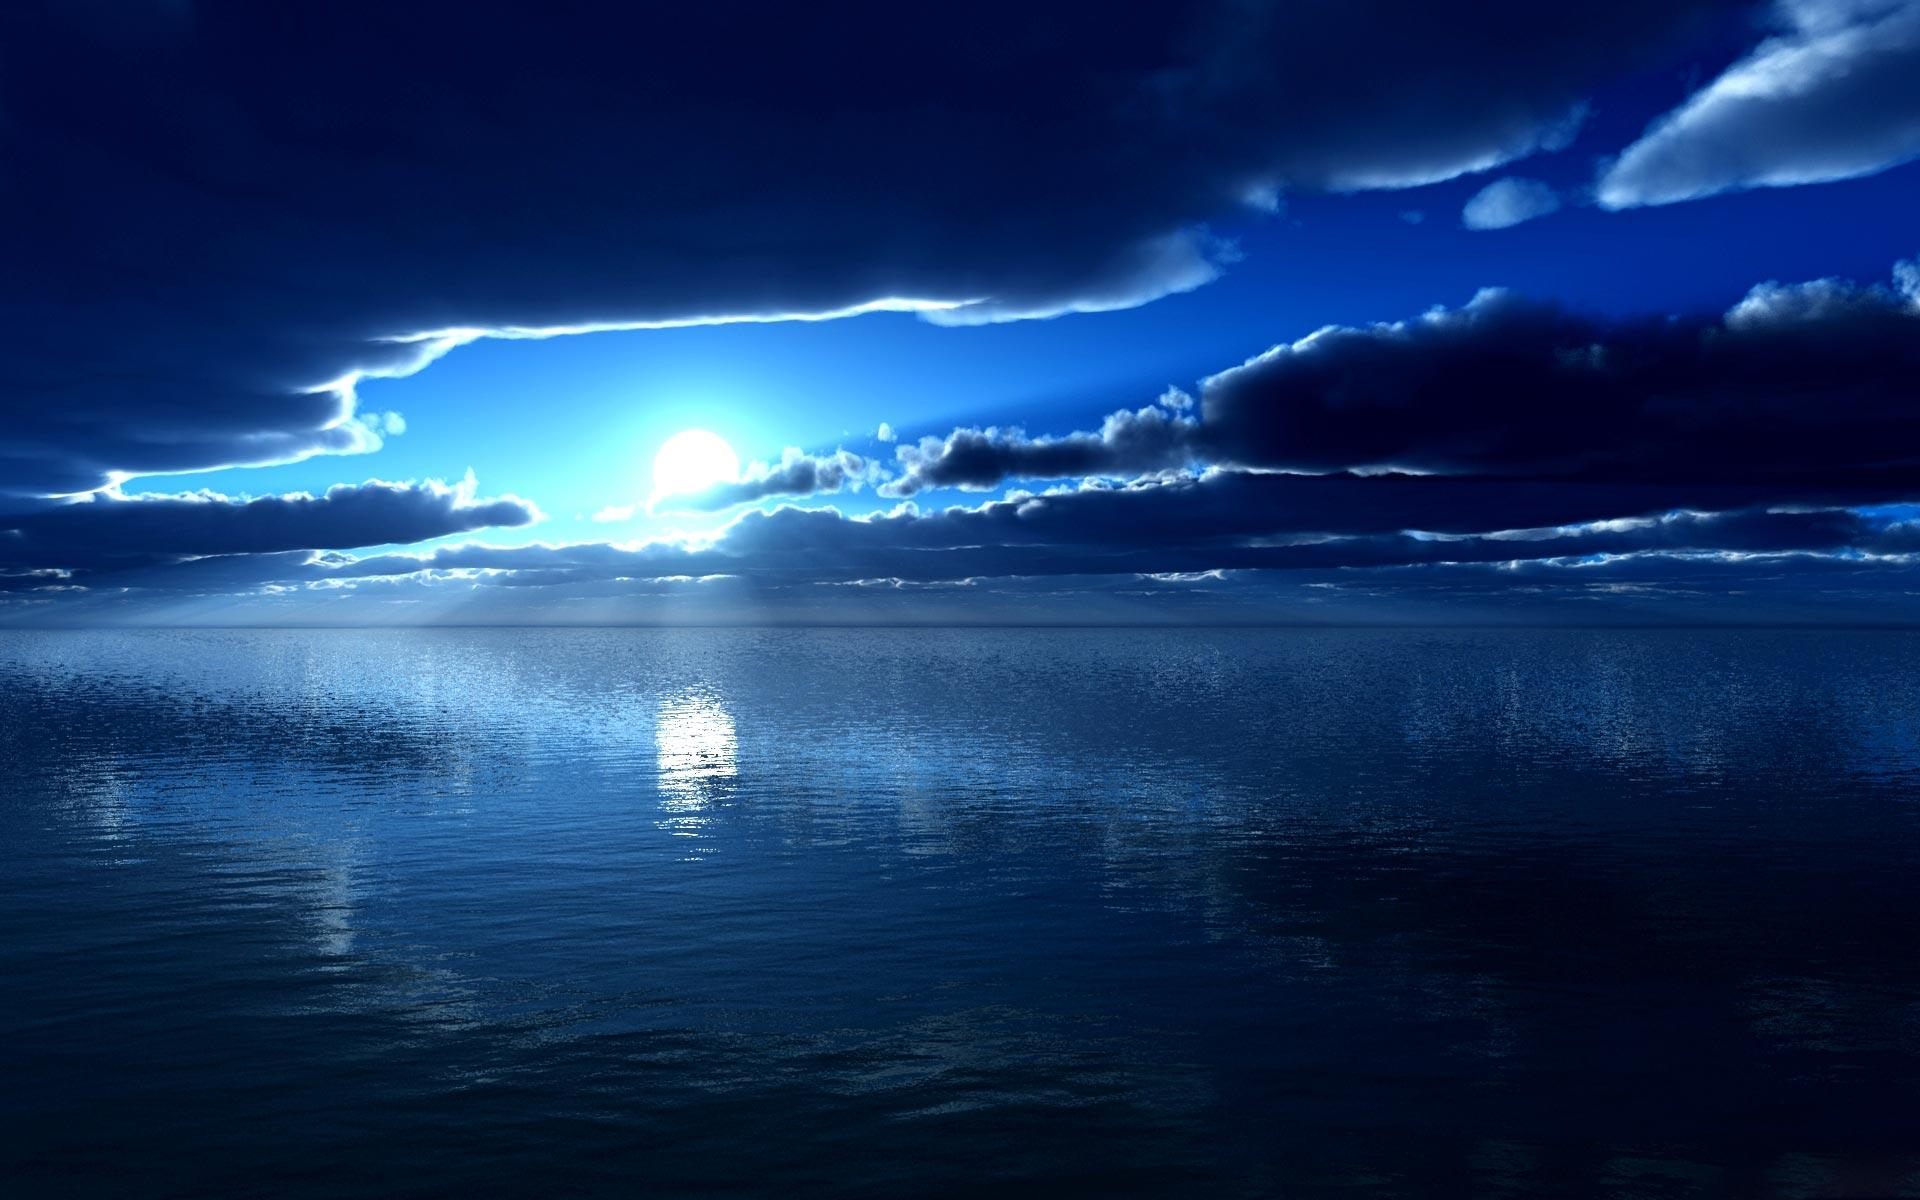 Sky and River relax desktop backgrounds hd Wallpaper | High .